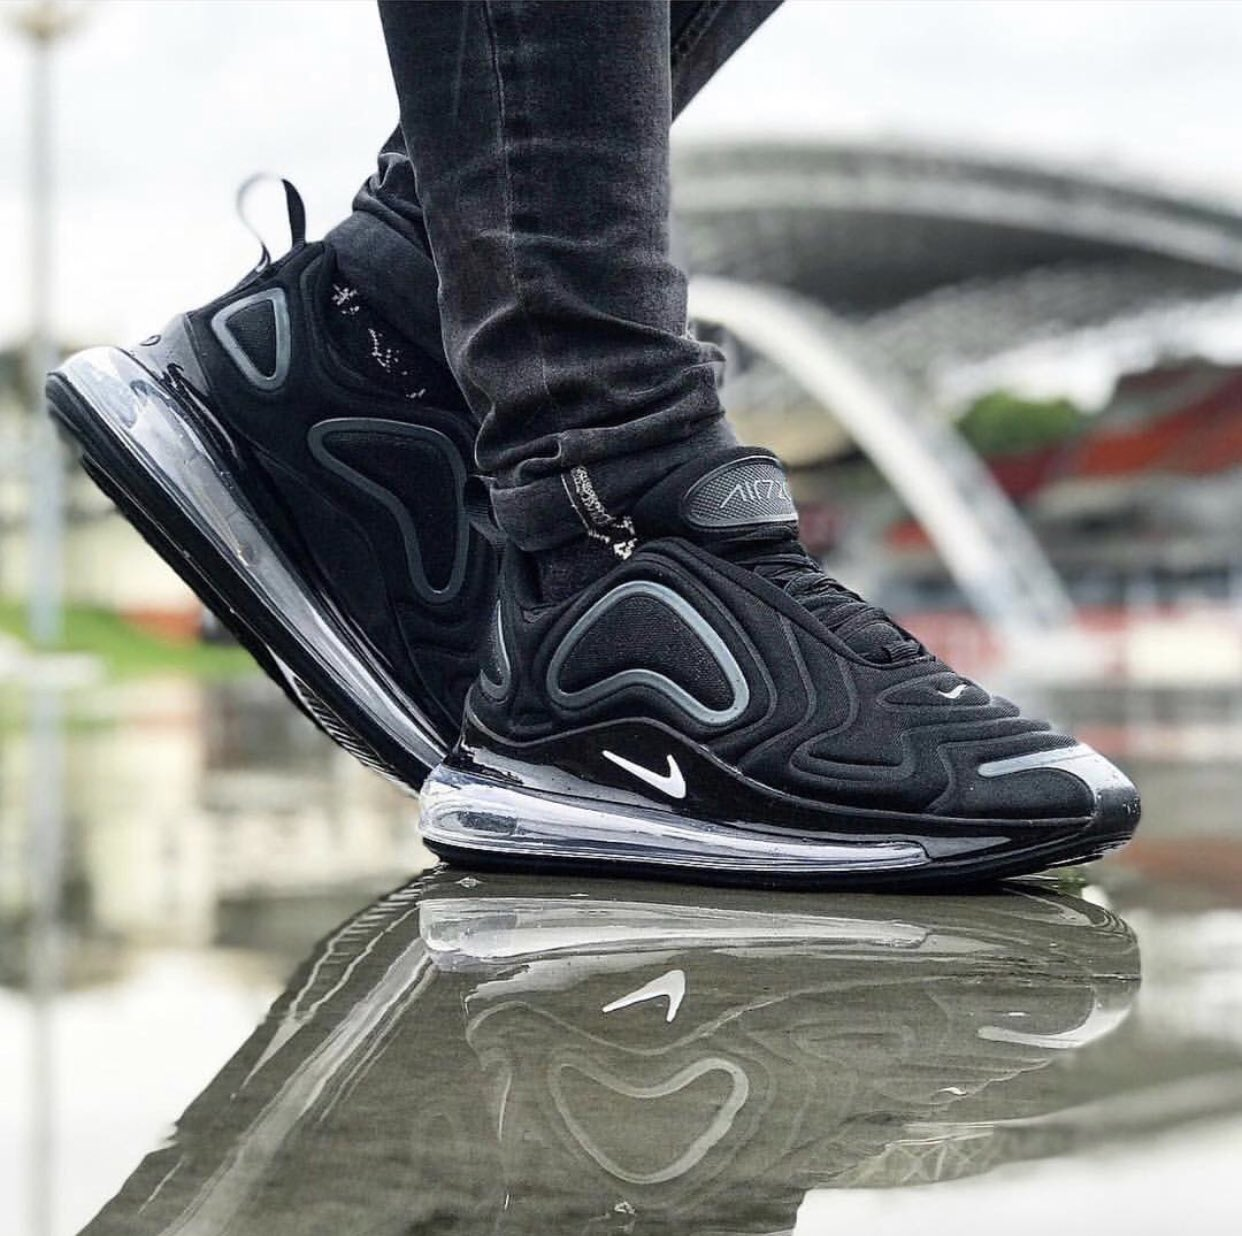 paix sur vous m nn s on twitter premi re photo de la nike air max 720 on feet m nn s au. Black Bedroom Furniture Sets. Home Design Ideas